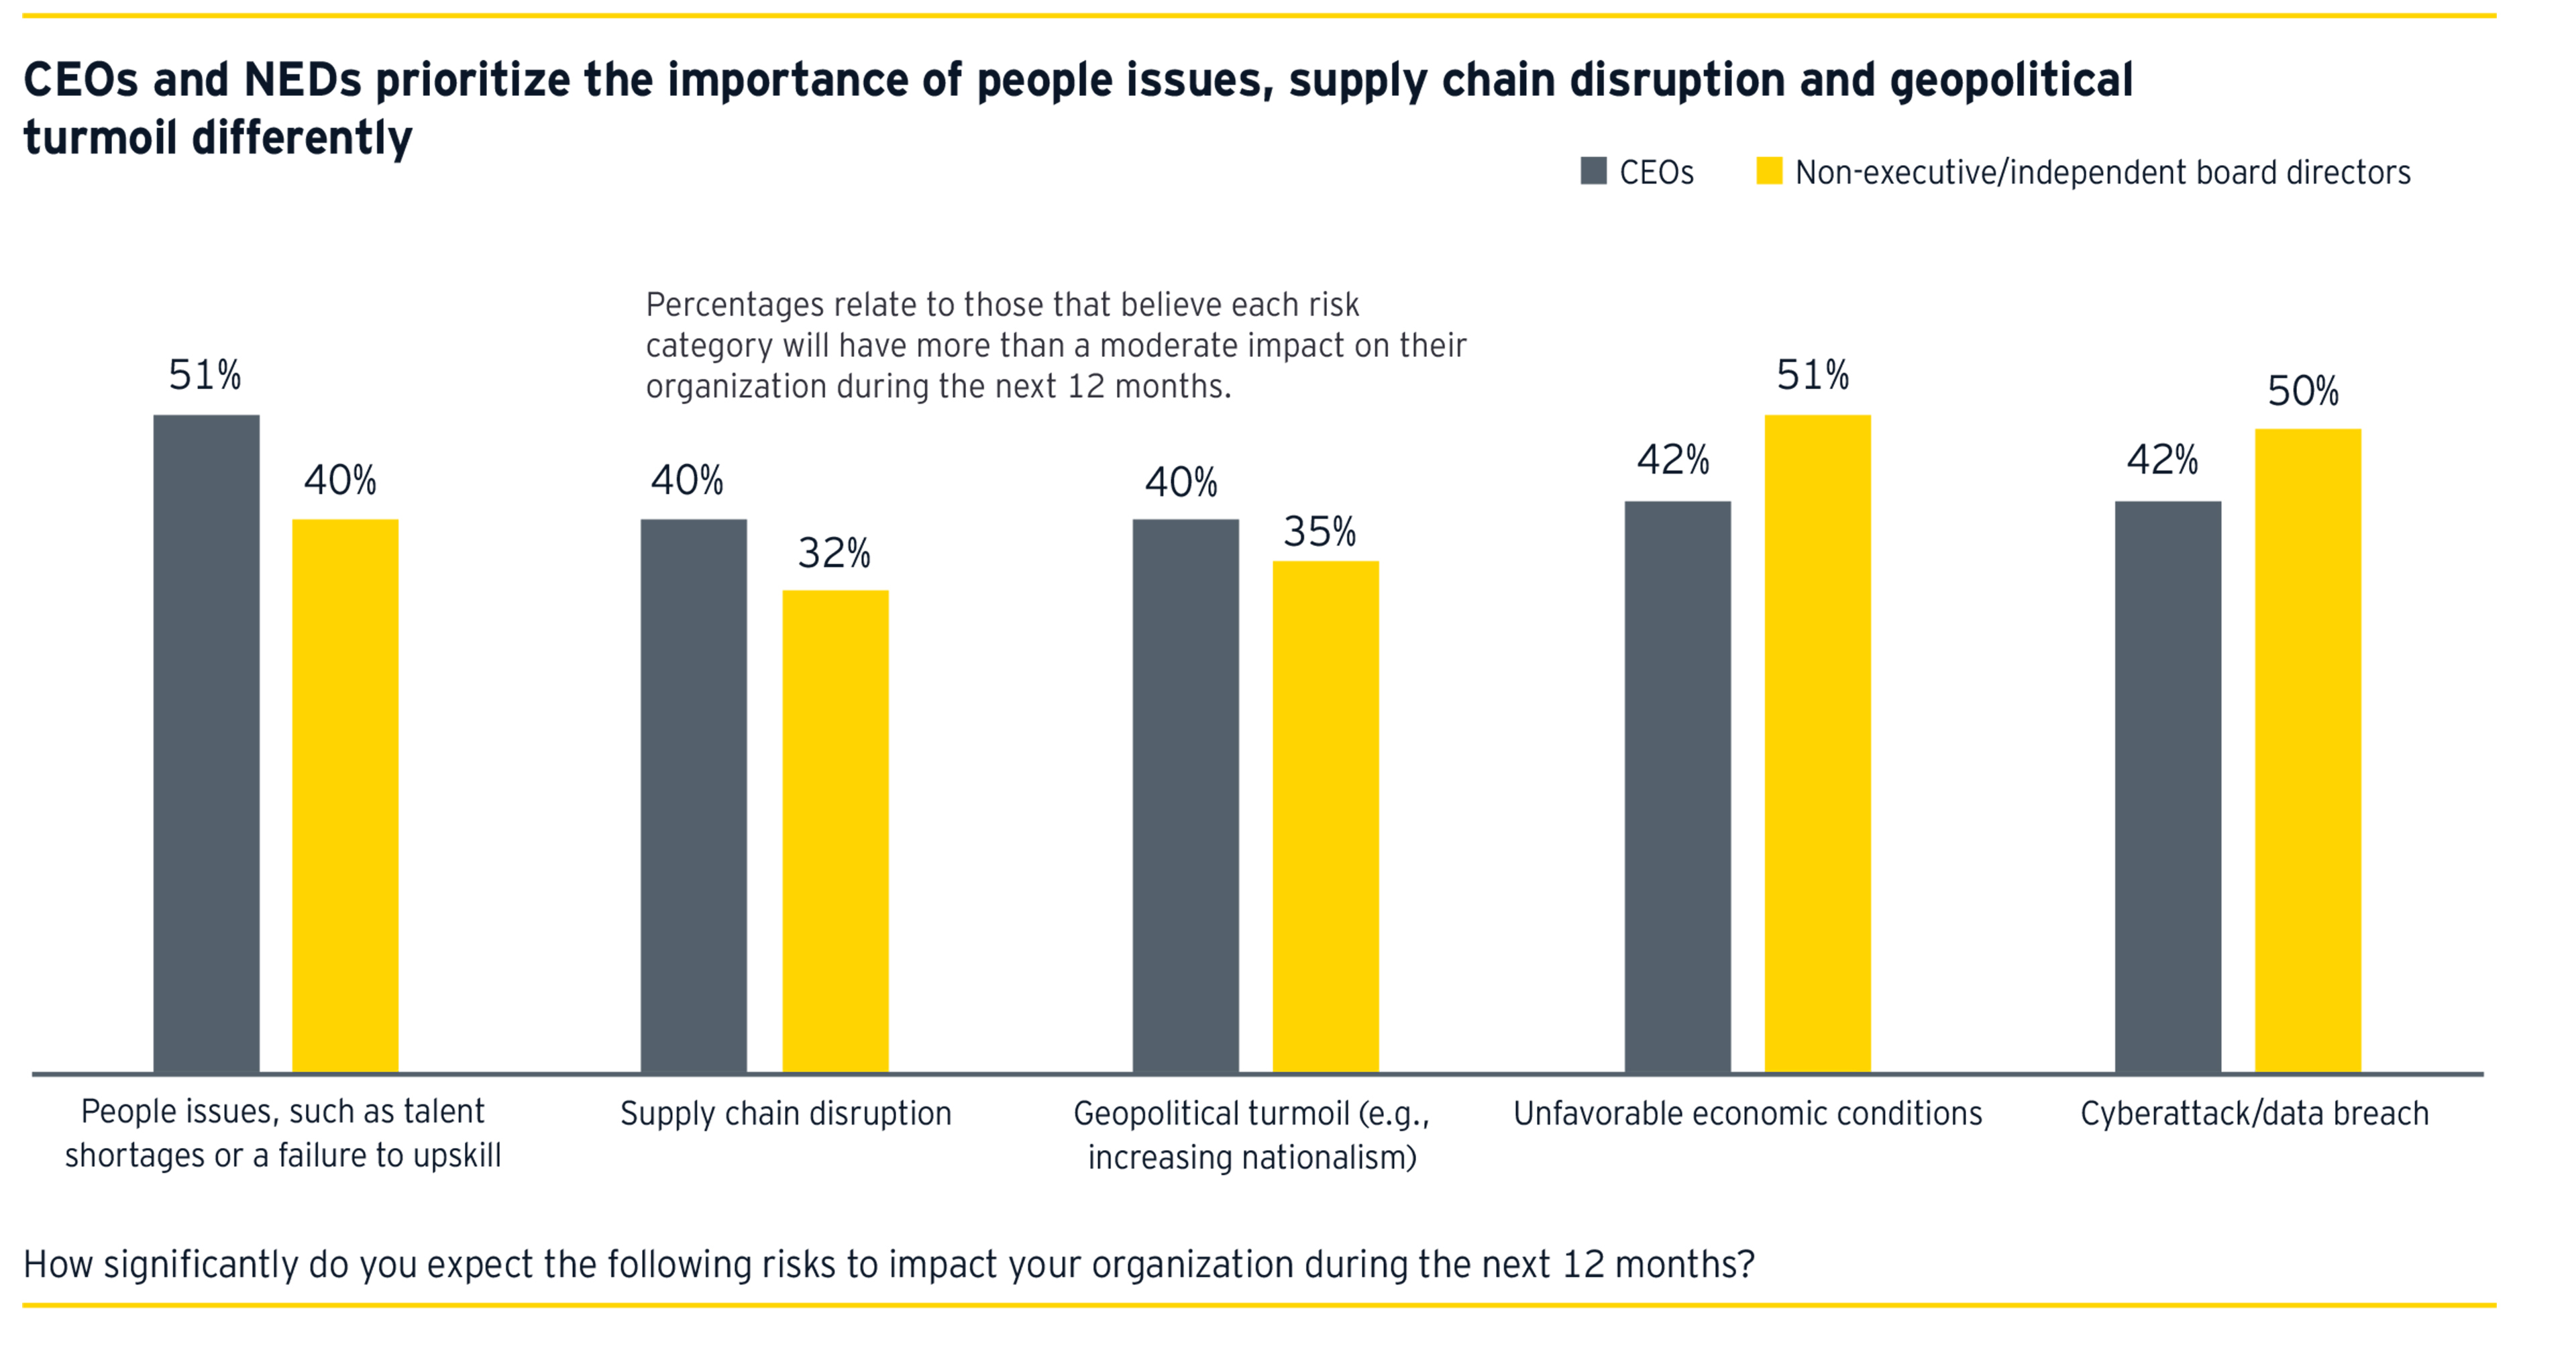 CEOs and NEDs prioritize the importance of people issues, supply chain disruption and geopolitical turmoil differently